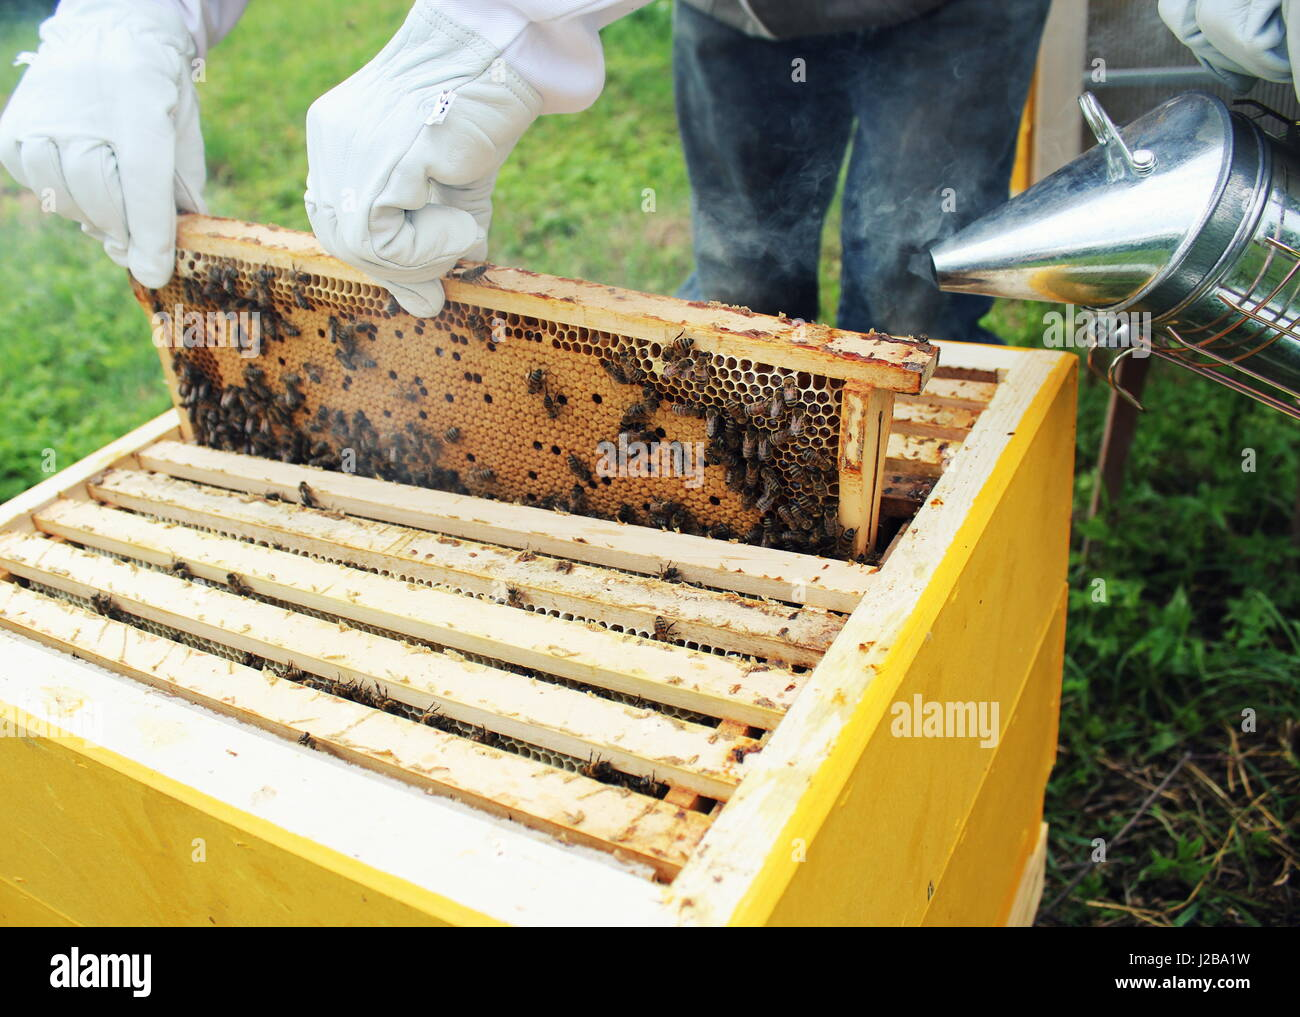 Beekeeper holds frame with honeycomb out of beehive - Stock Image